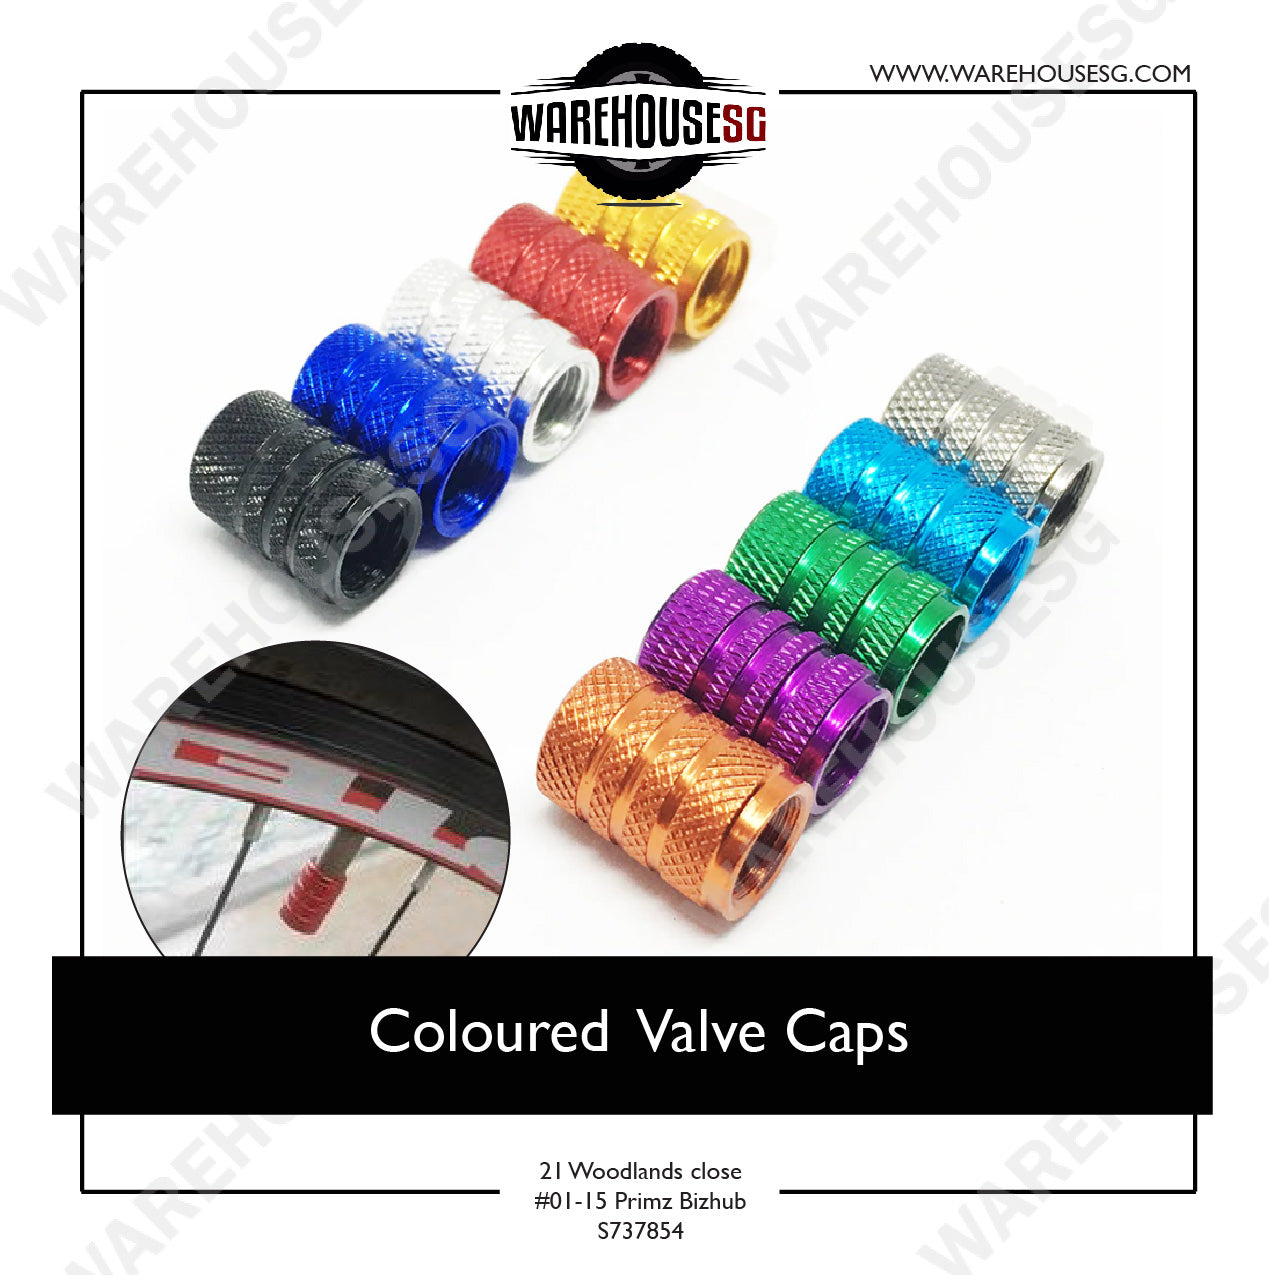 Coloured Valve Caps